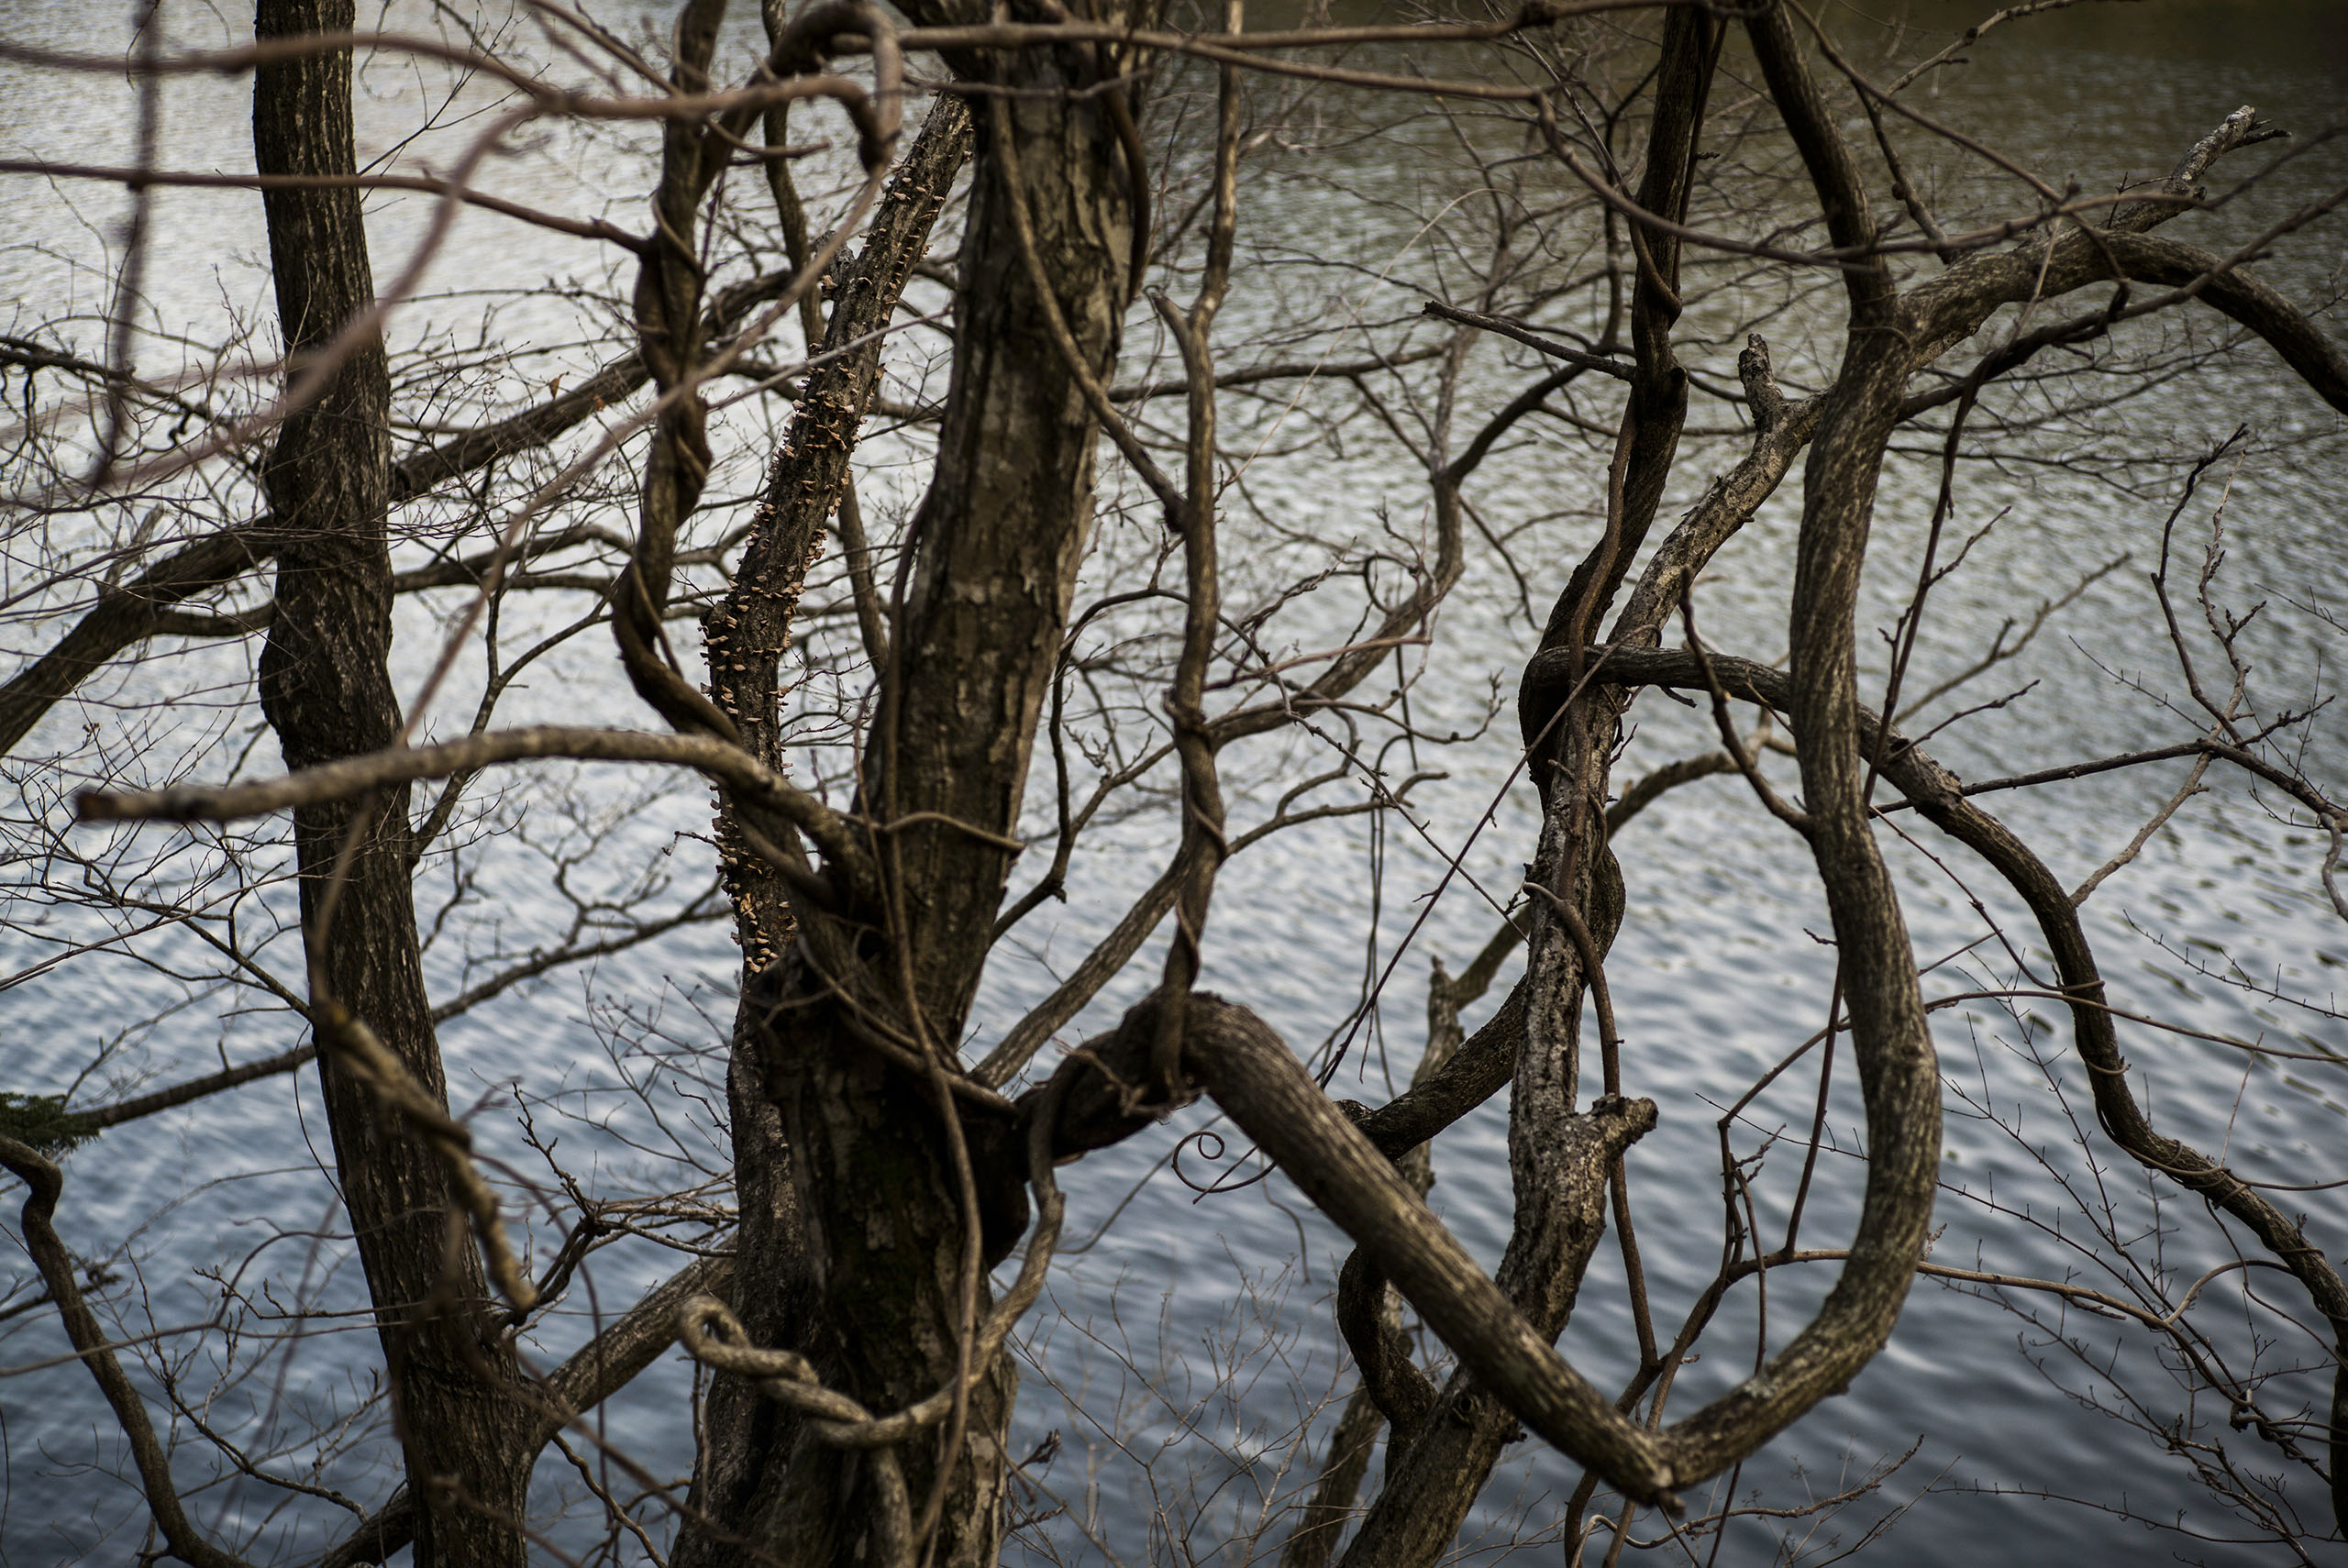 A tree hovers over a lake that was contaminated by the disaster at the Fukushima Daiichi nuclear power plant, Minamisoma, Japan, March 8, 2016.